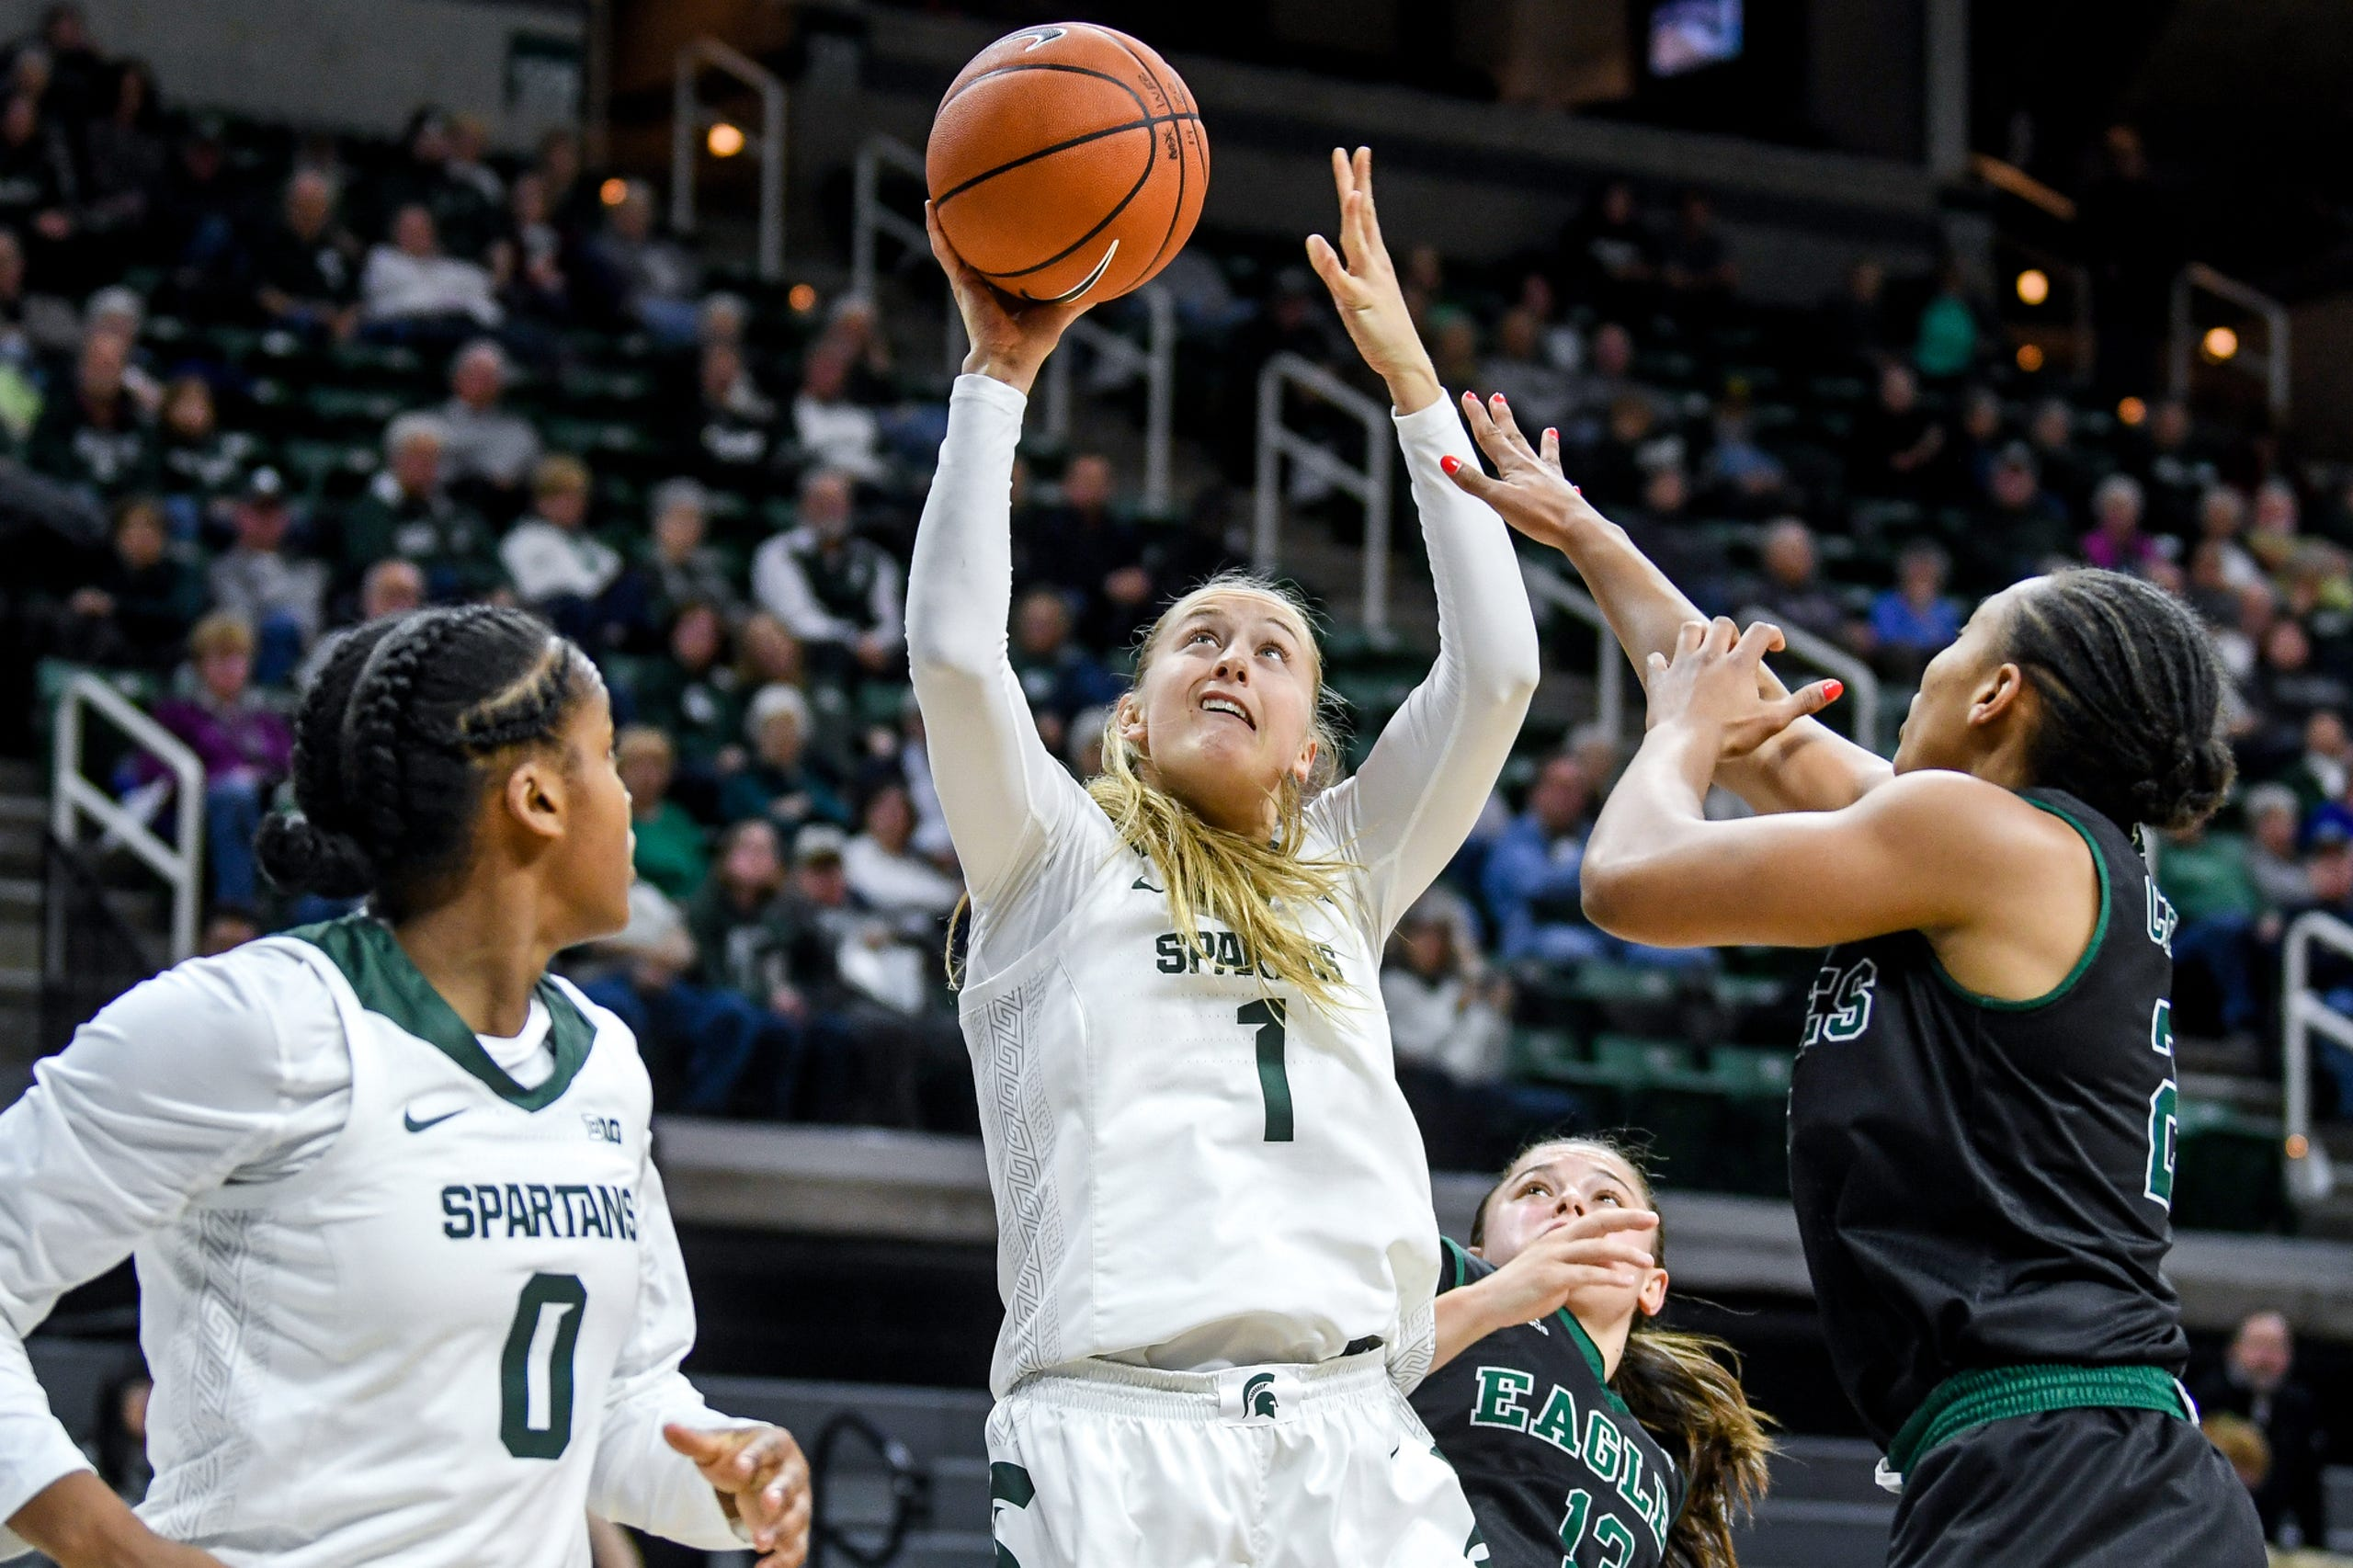 Michigan State's Tory Ozment, center, scores as Eastern Michigan's Corrione Cardwell defends during the  fourth quarter on Tuesday, Nov. 5, 2019, at the Breslin Center in East Lansing.